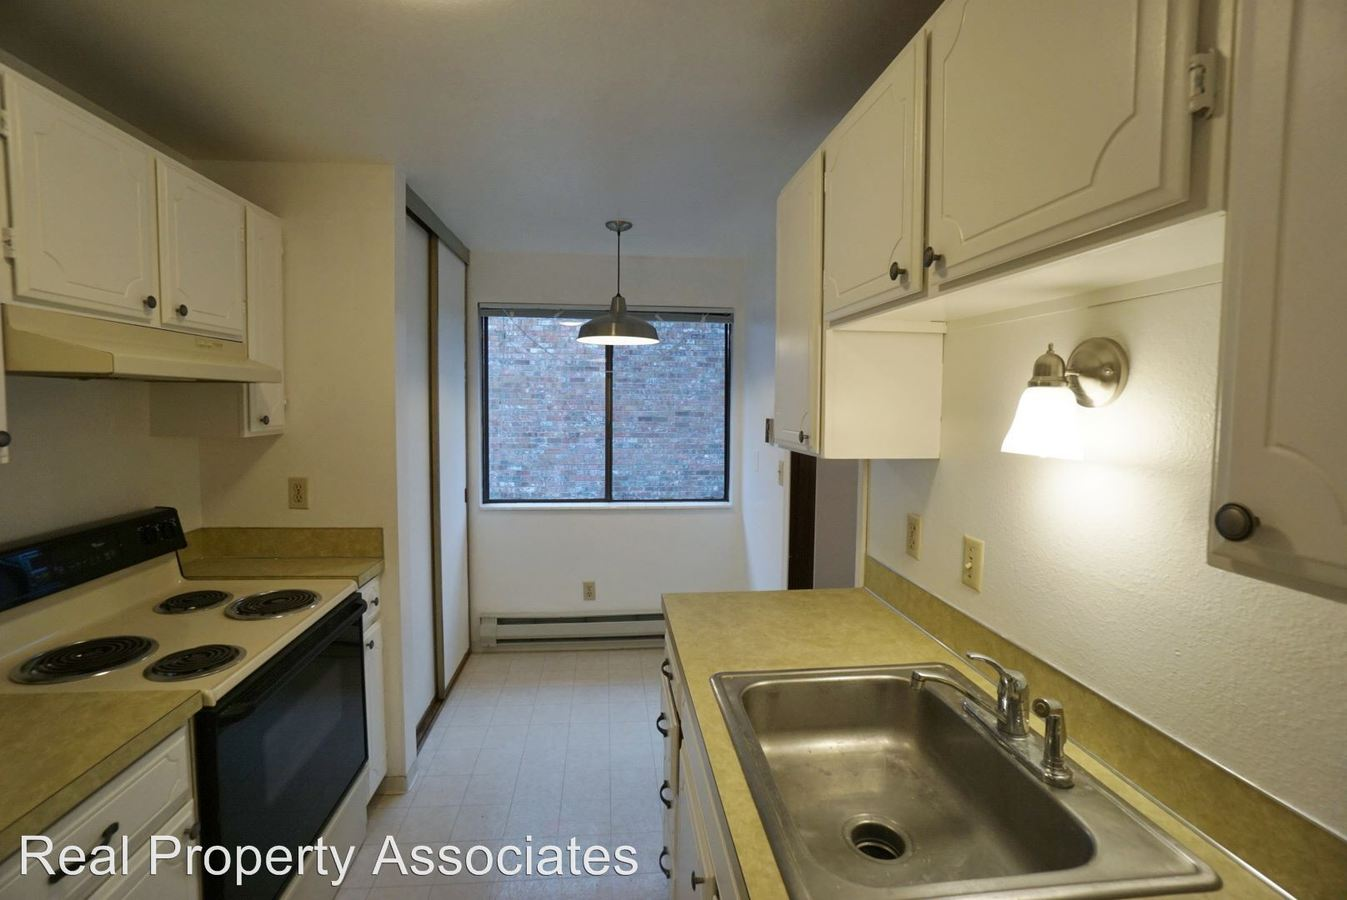 2 Bedrooms 2 Bathrooms Apartment for rent at 3428 25th Avenue W in Seattle, WA